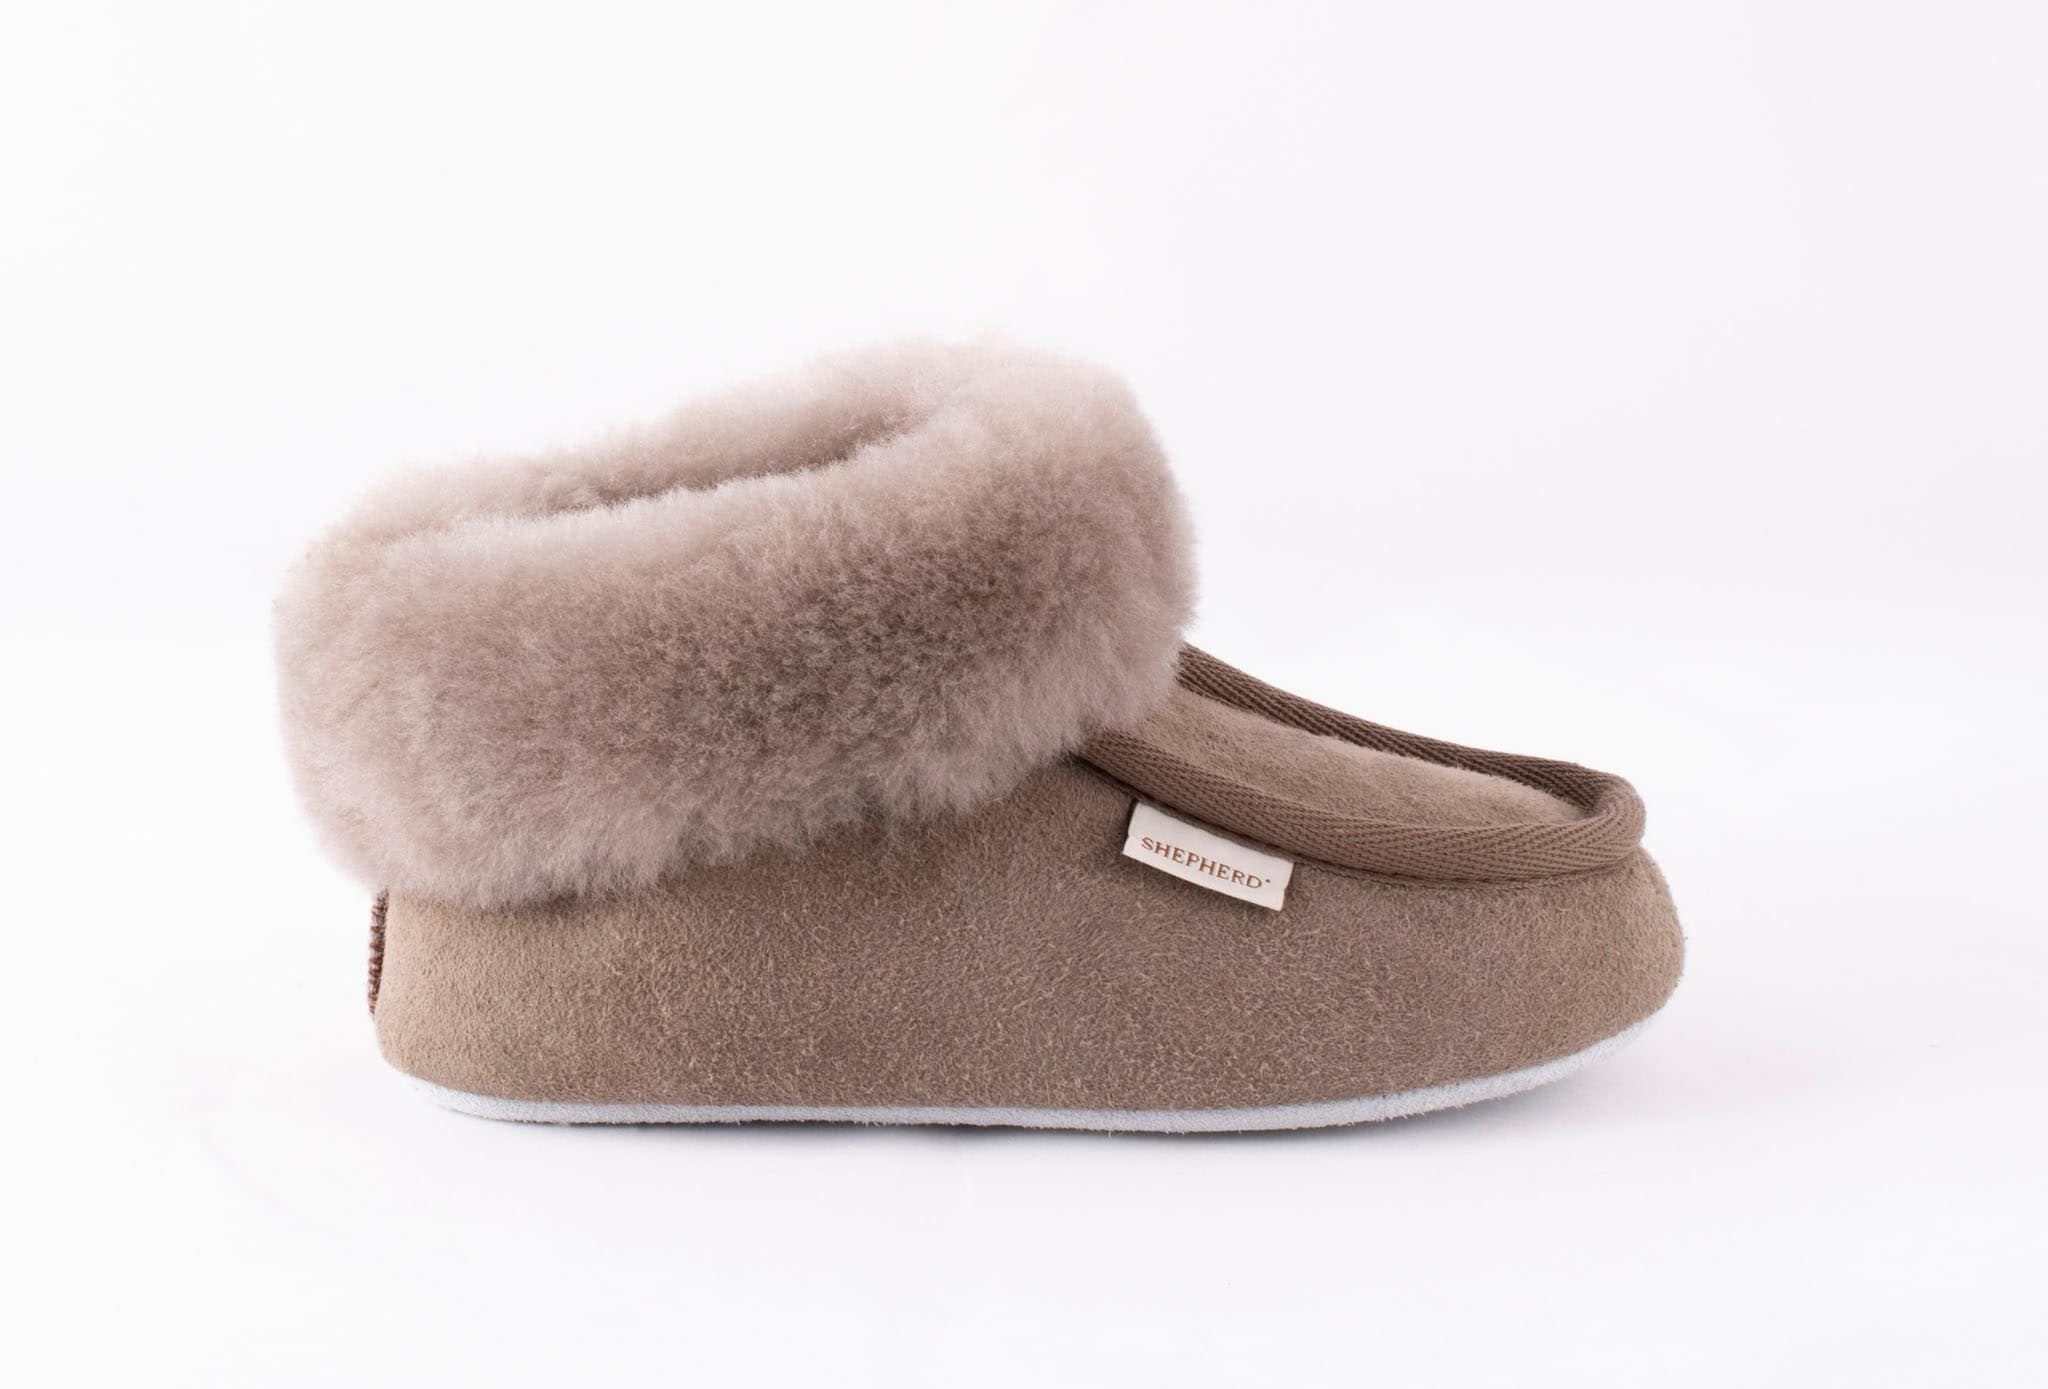 Shepherd Osby slippers